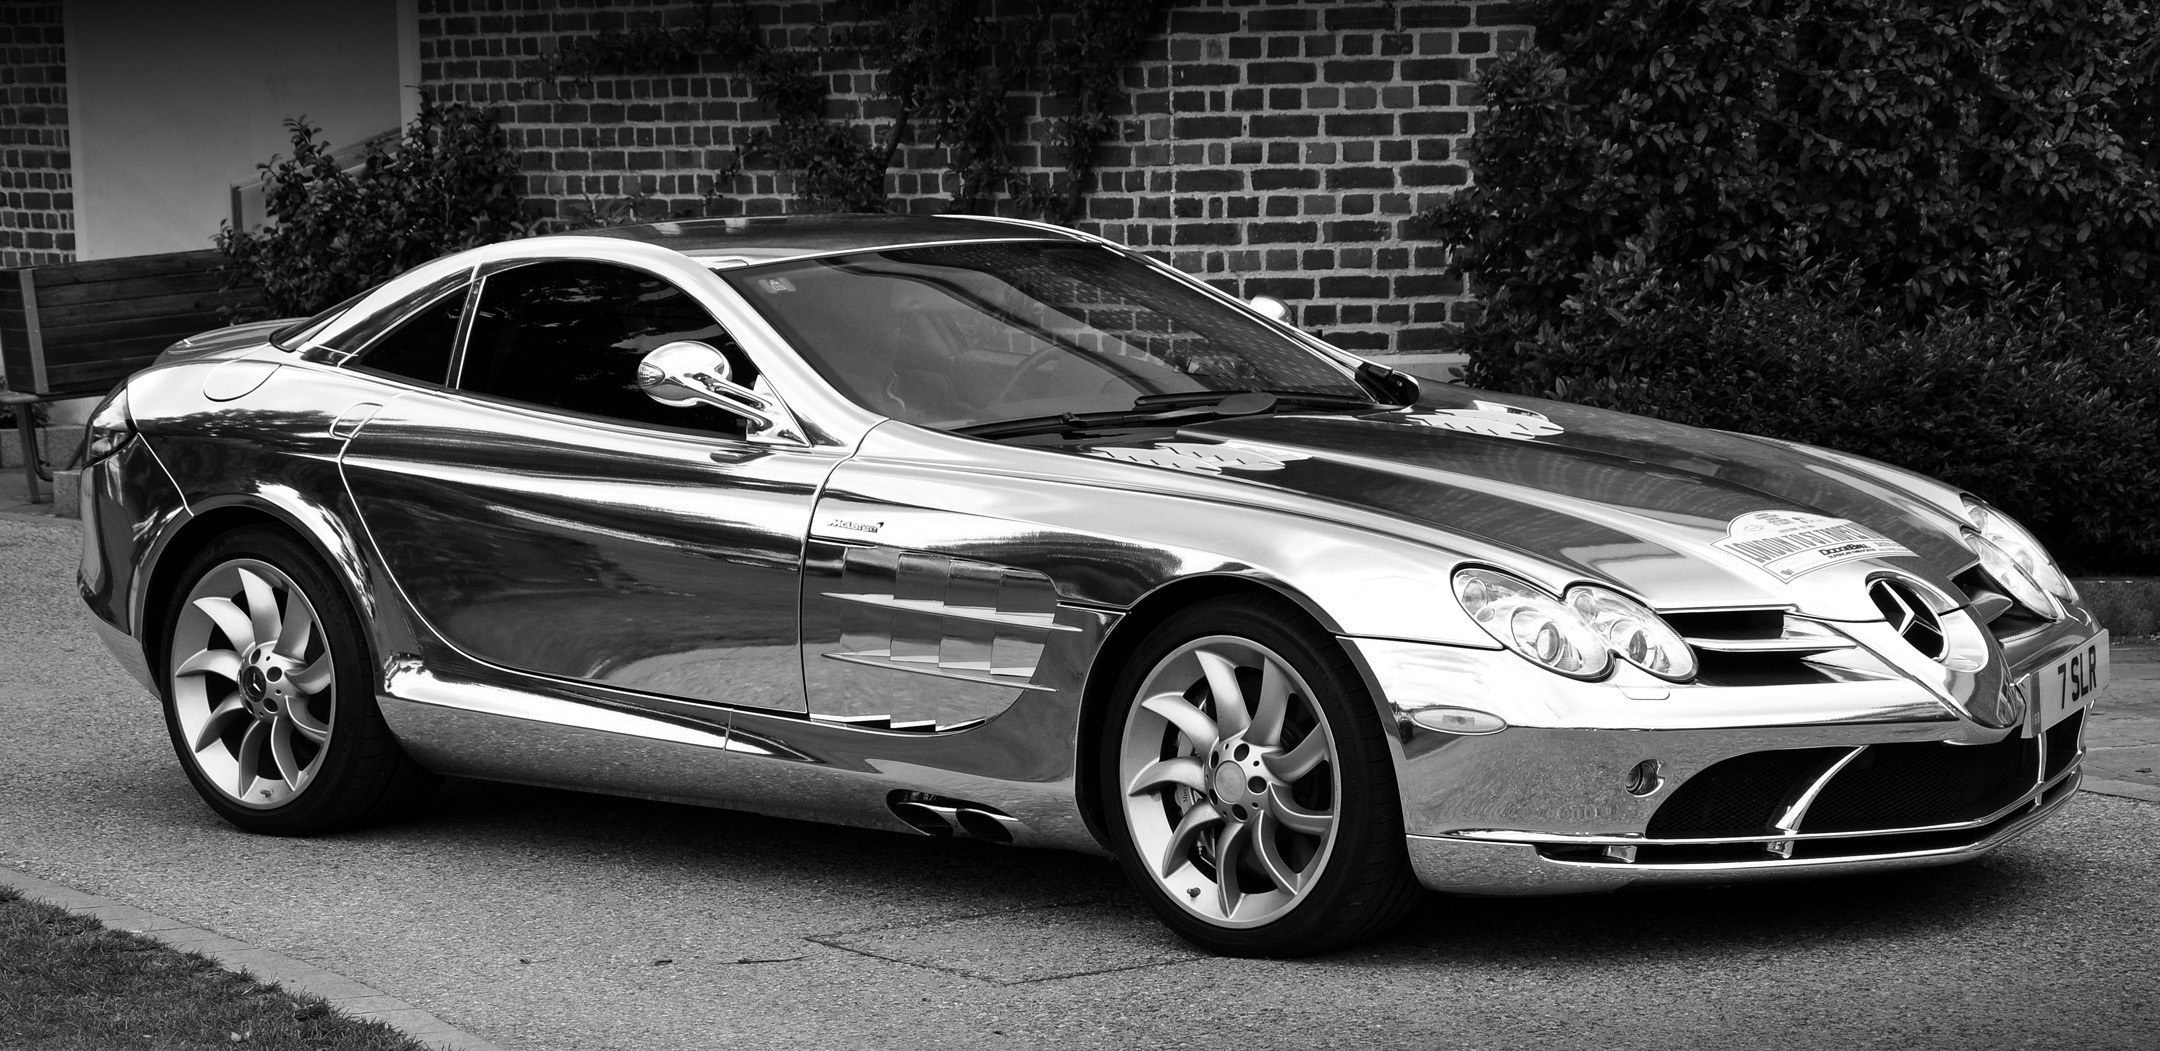 McLaren Mercedes SLR In Chrome